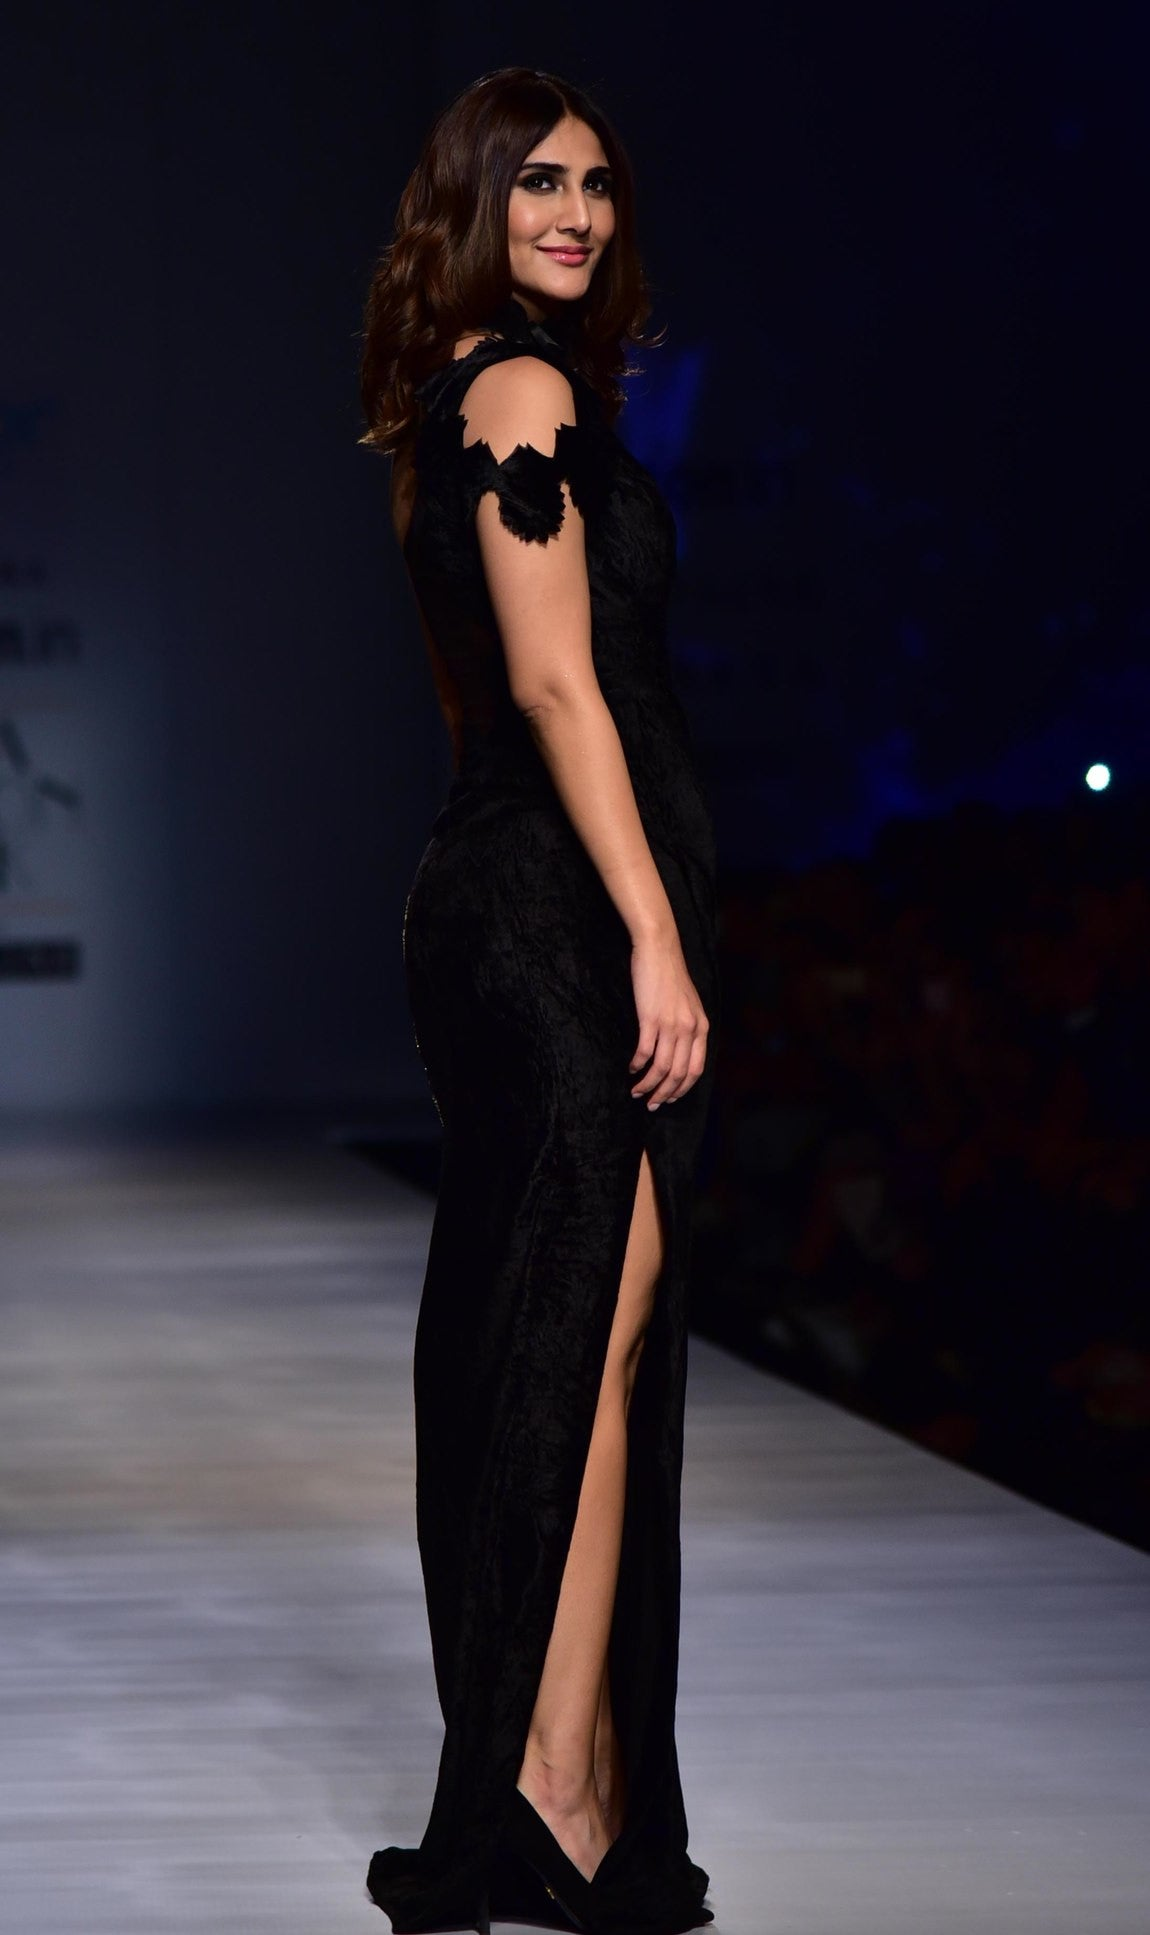 Vaani Kapoor Looked Like Black Magic in Rina Dhaka's Designer Gown at Amazon India Fashion Week 2017